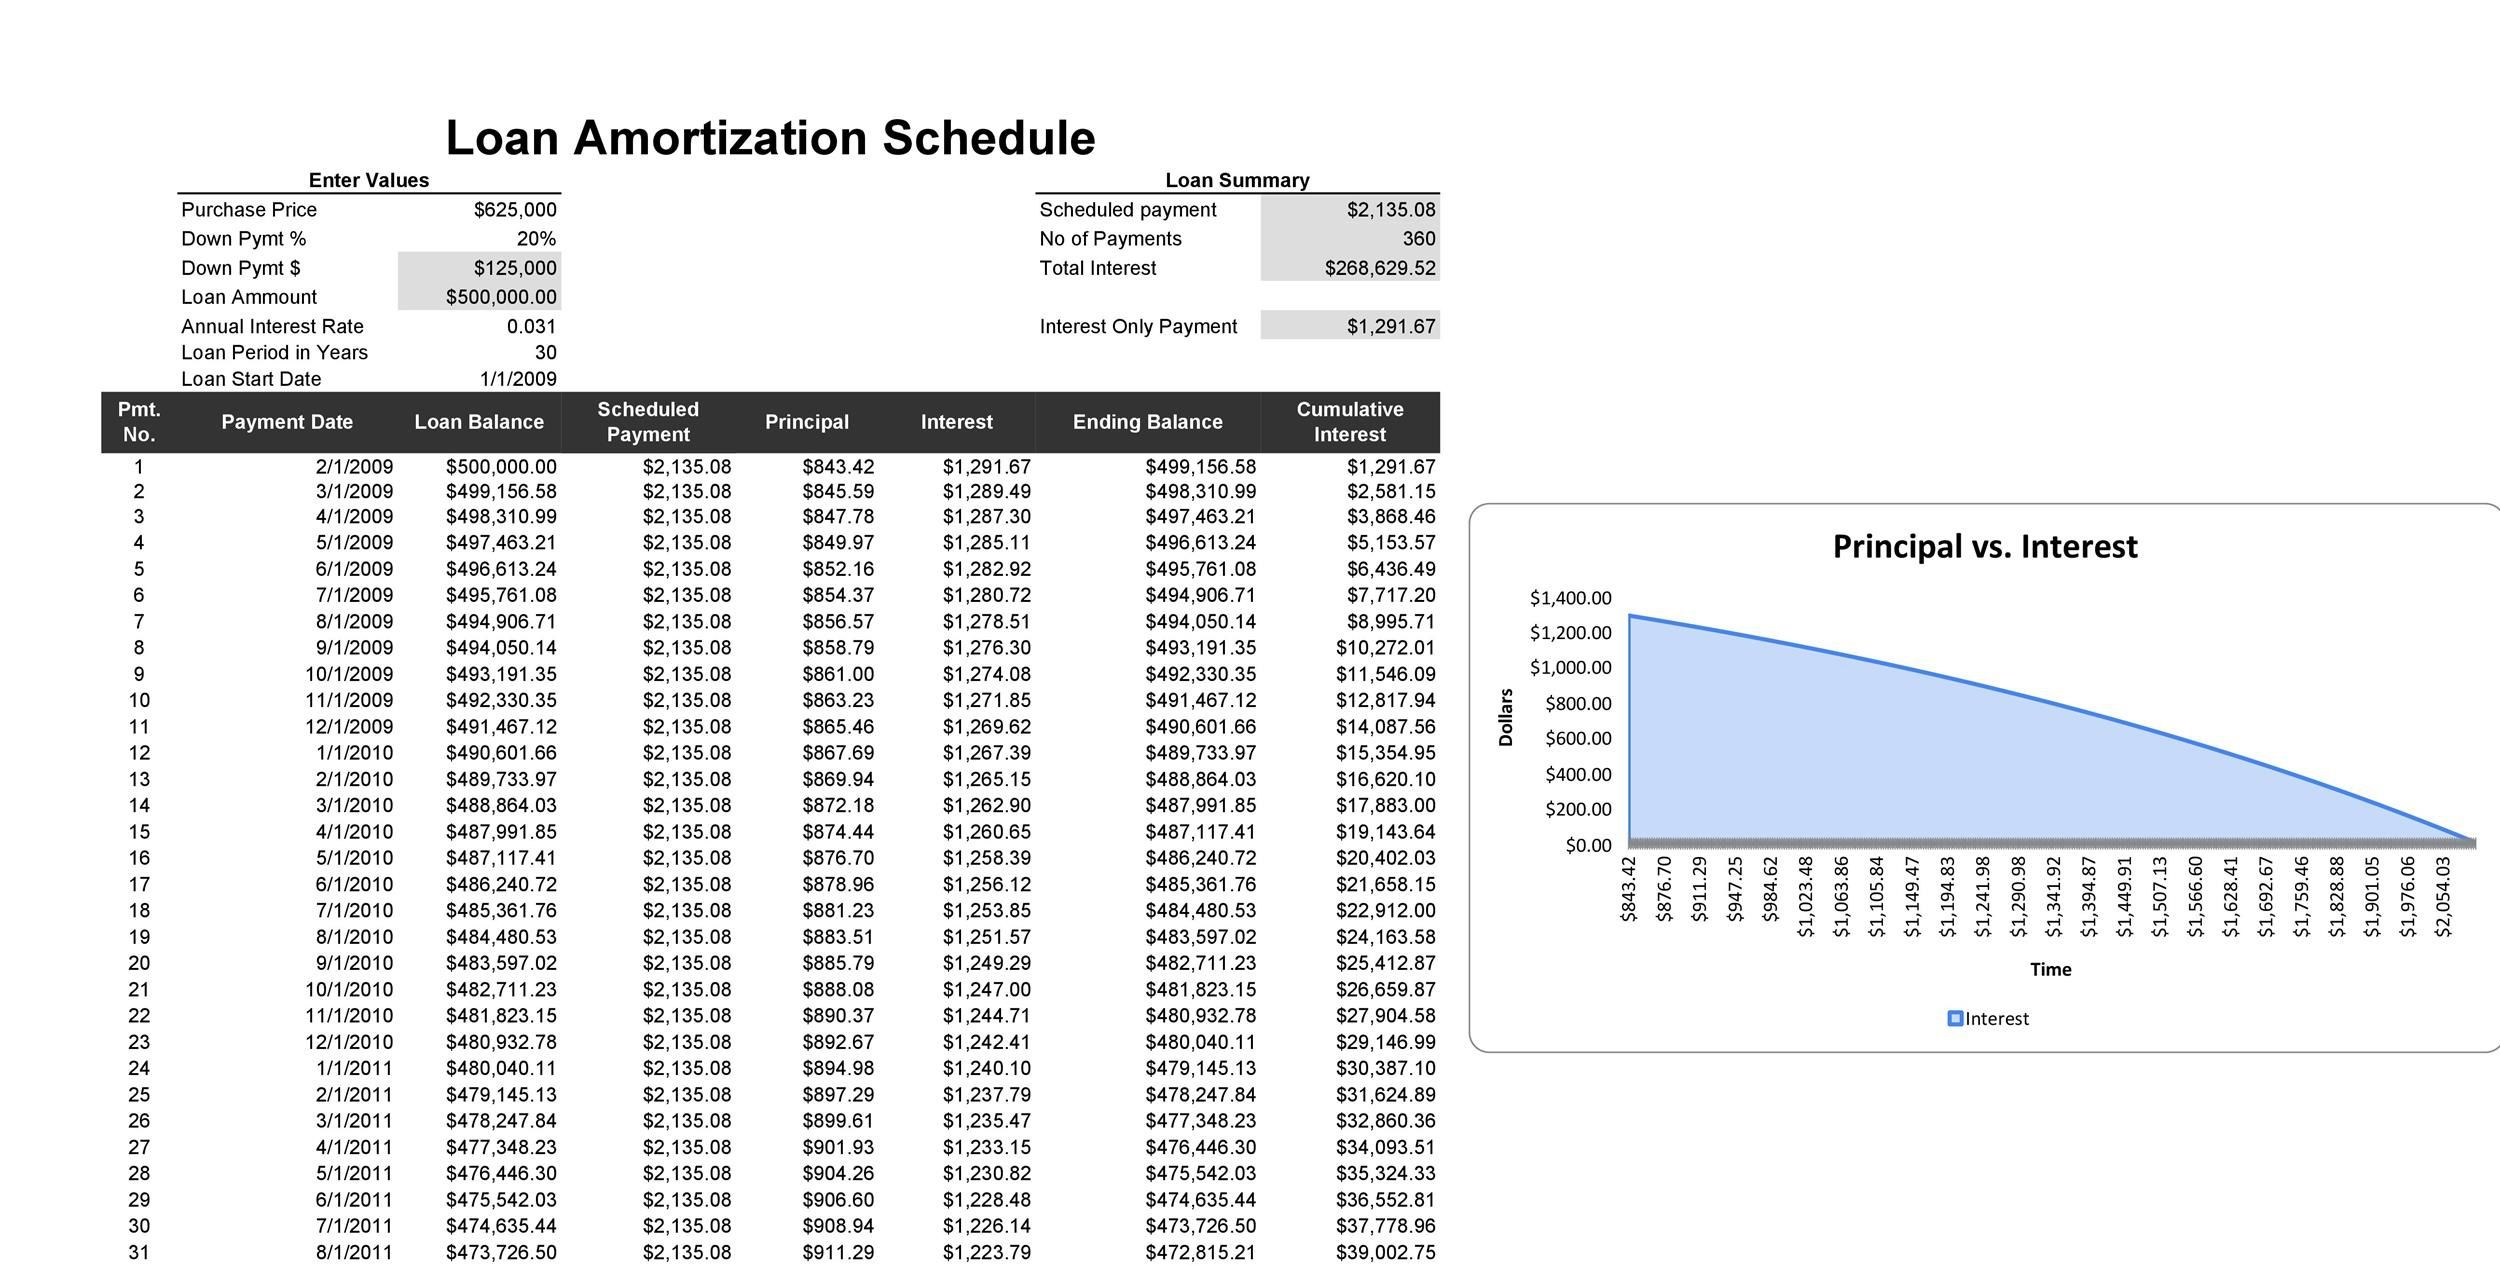 007 Excellent Amortization Schedule Excel Template Image  Calculator Free Loan Software DownloadFull